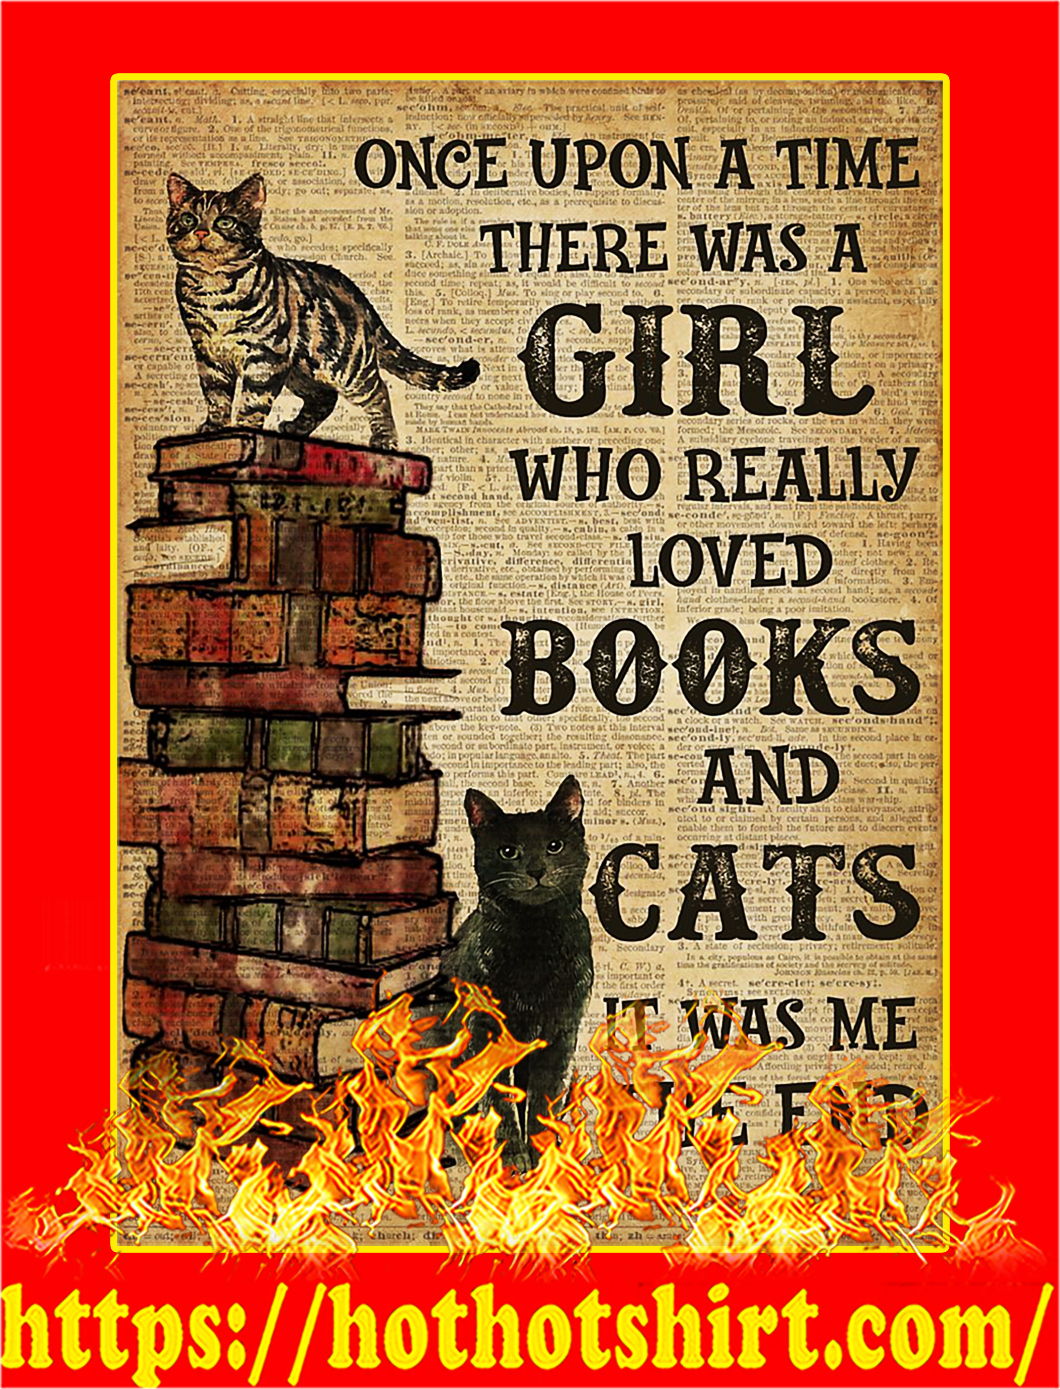 Once Upon A Time There Was A Girl Loved Books And Cats Poster - A3